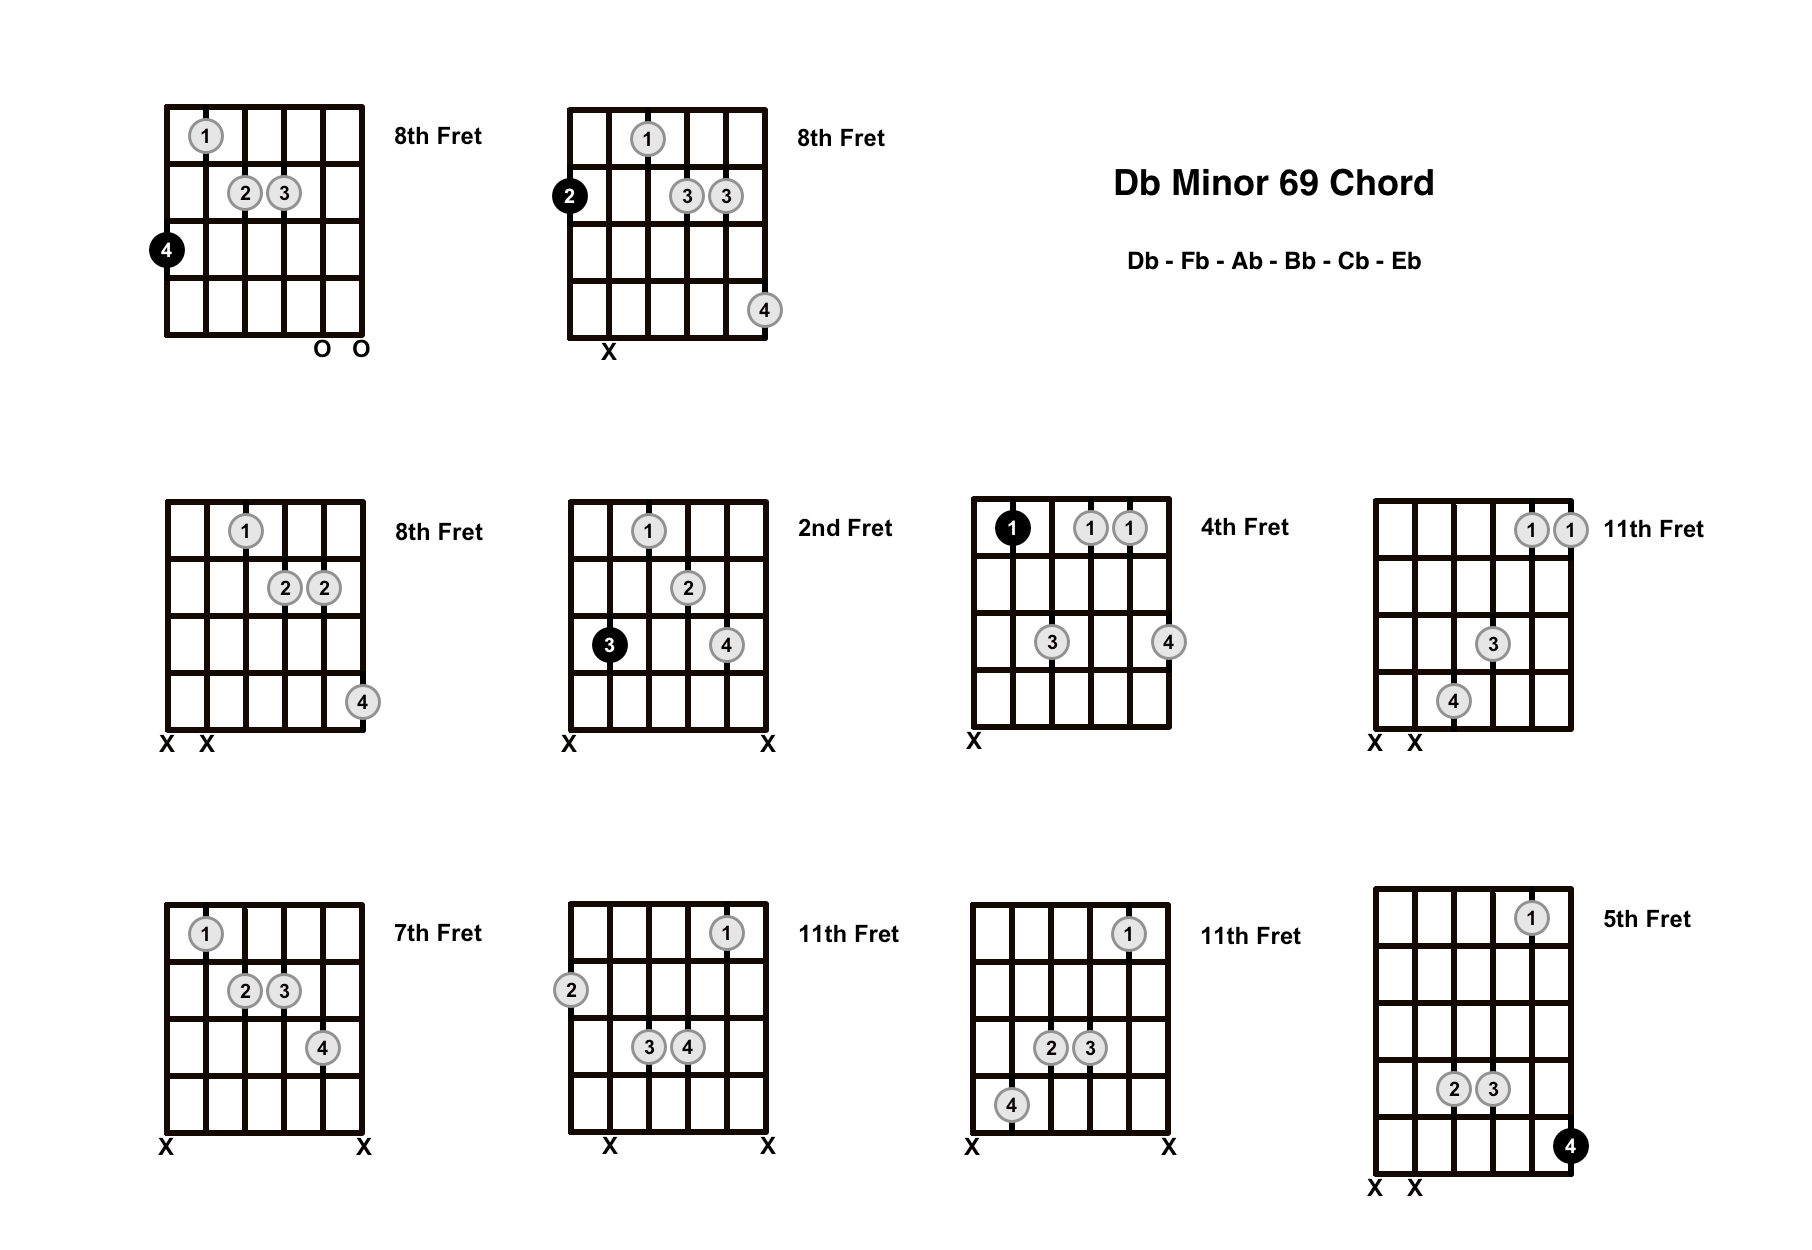 Dbm69 Chord On The Guitar (D Flat Minor 69) – Diagrams, Finger Positions and Theory